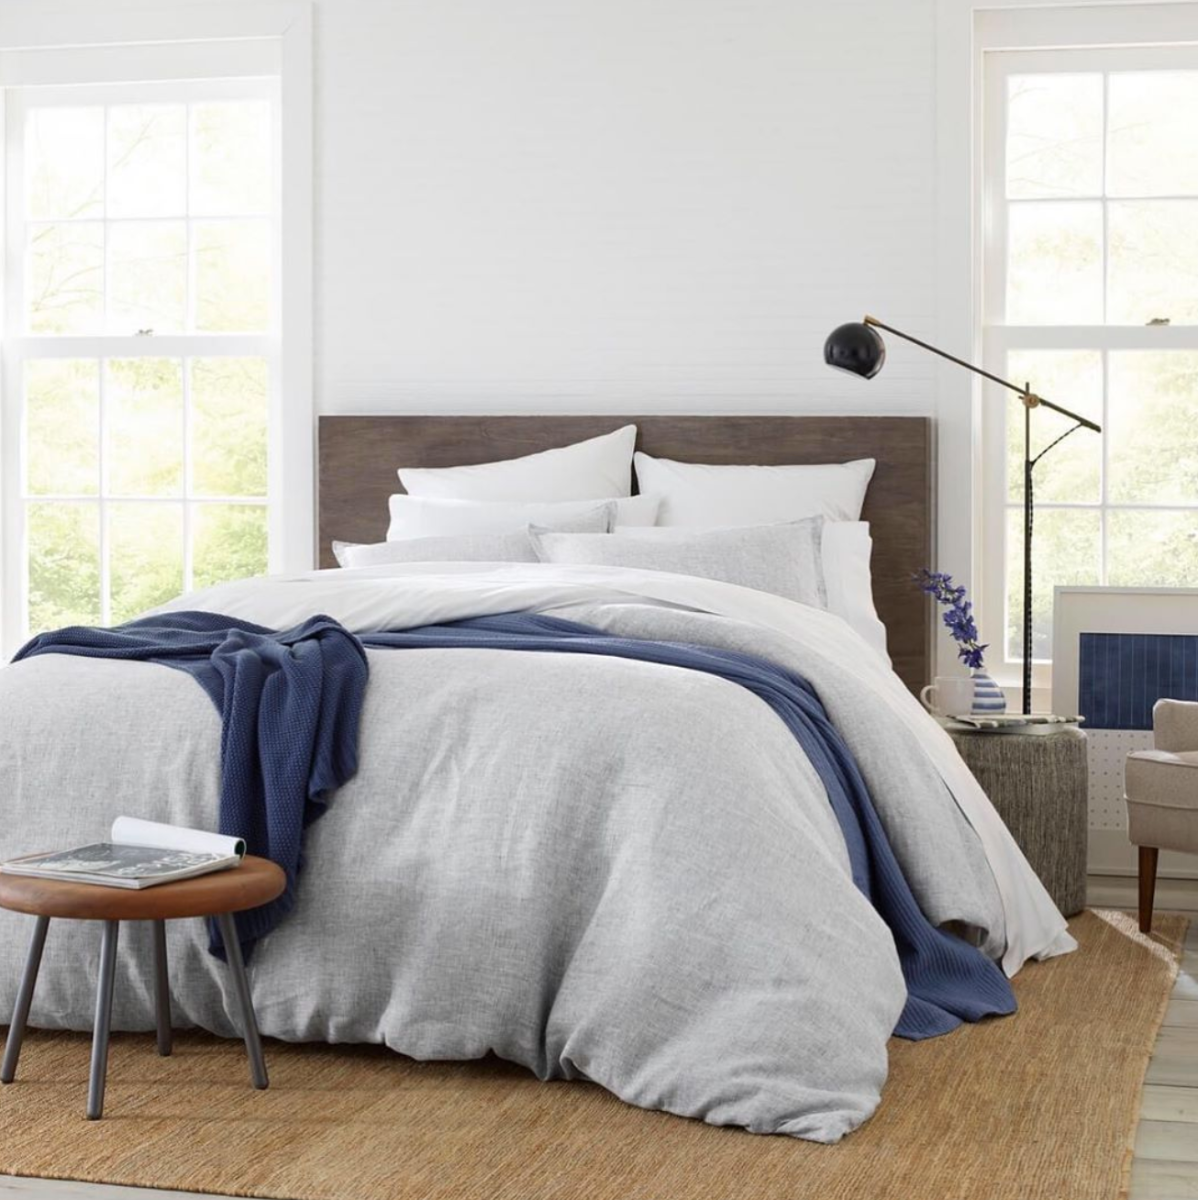 Linen duvet set in heathered navy